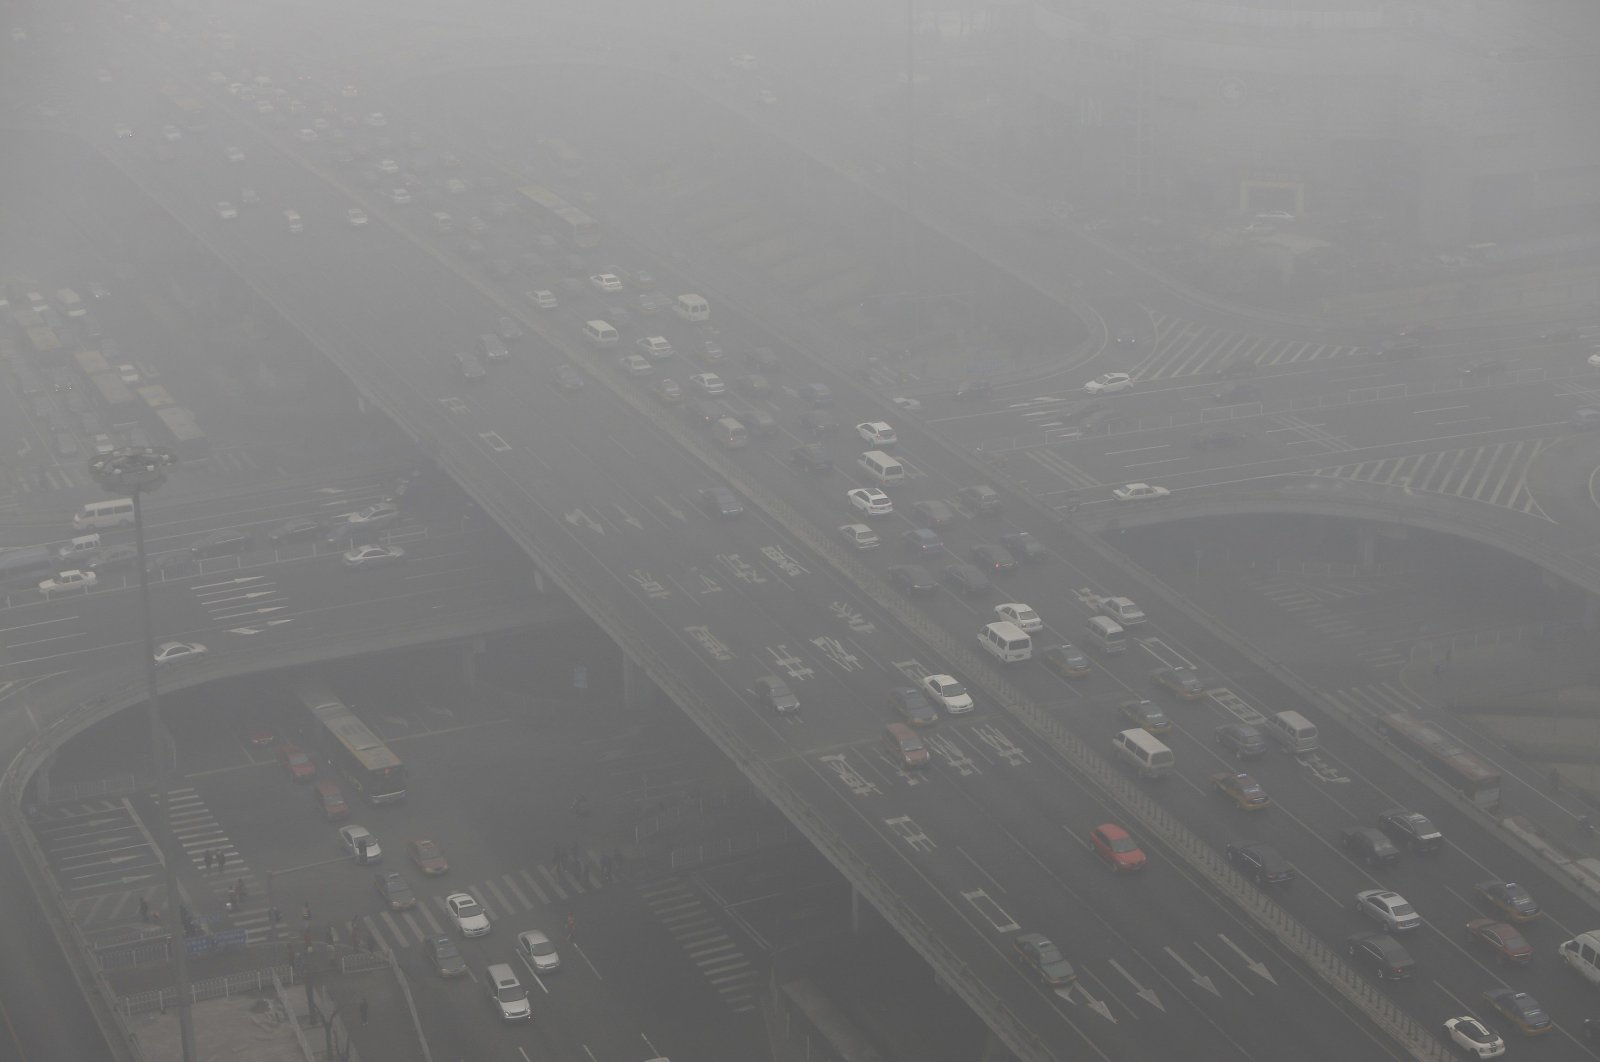 Vehicles across the Guomao Bridge on a hazy day in Beijing's central business district, China, Jan. 29, 2013. (Reuters Photo)